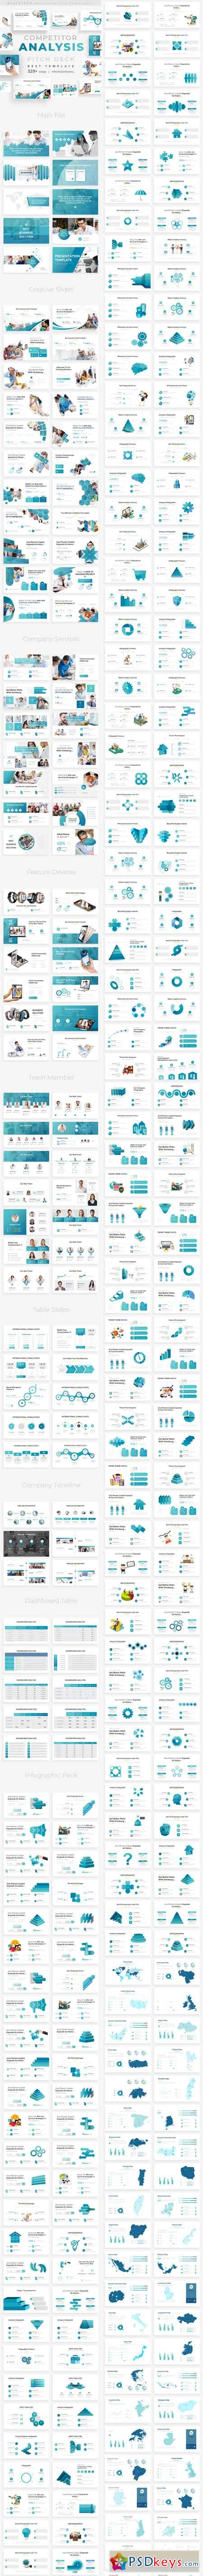 Competitor Analysis Pitch Deck Powerpoint Template 22781197